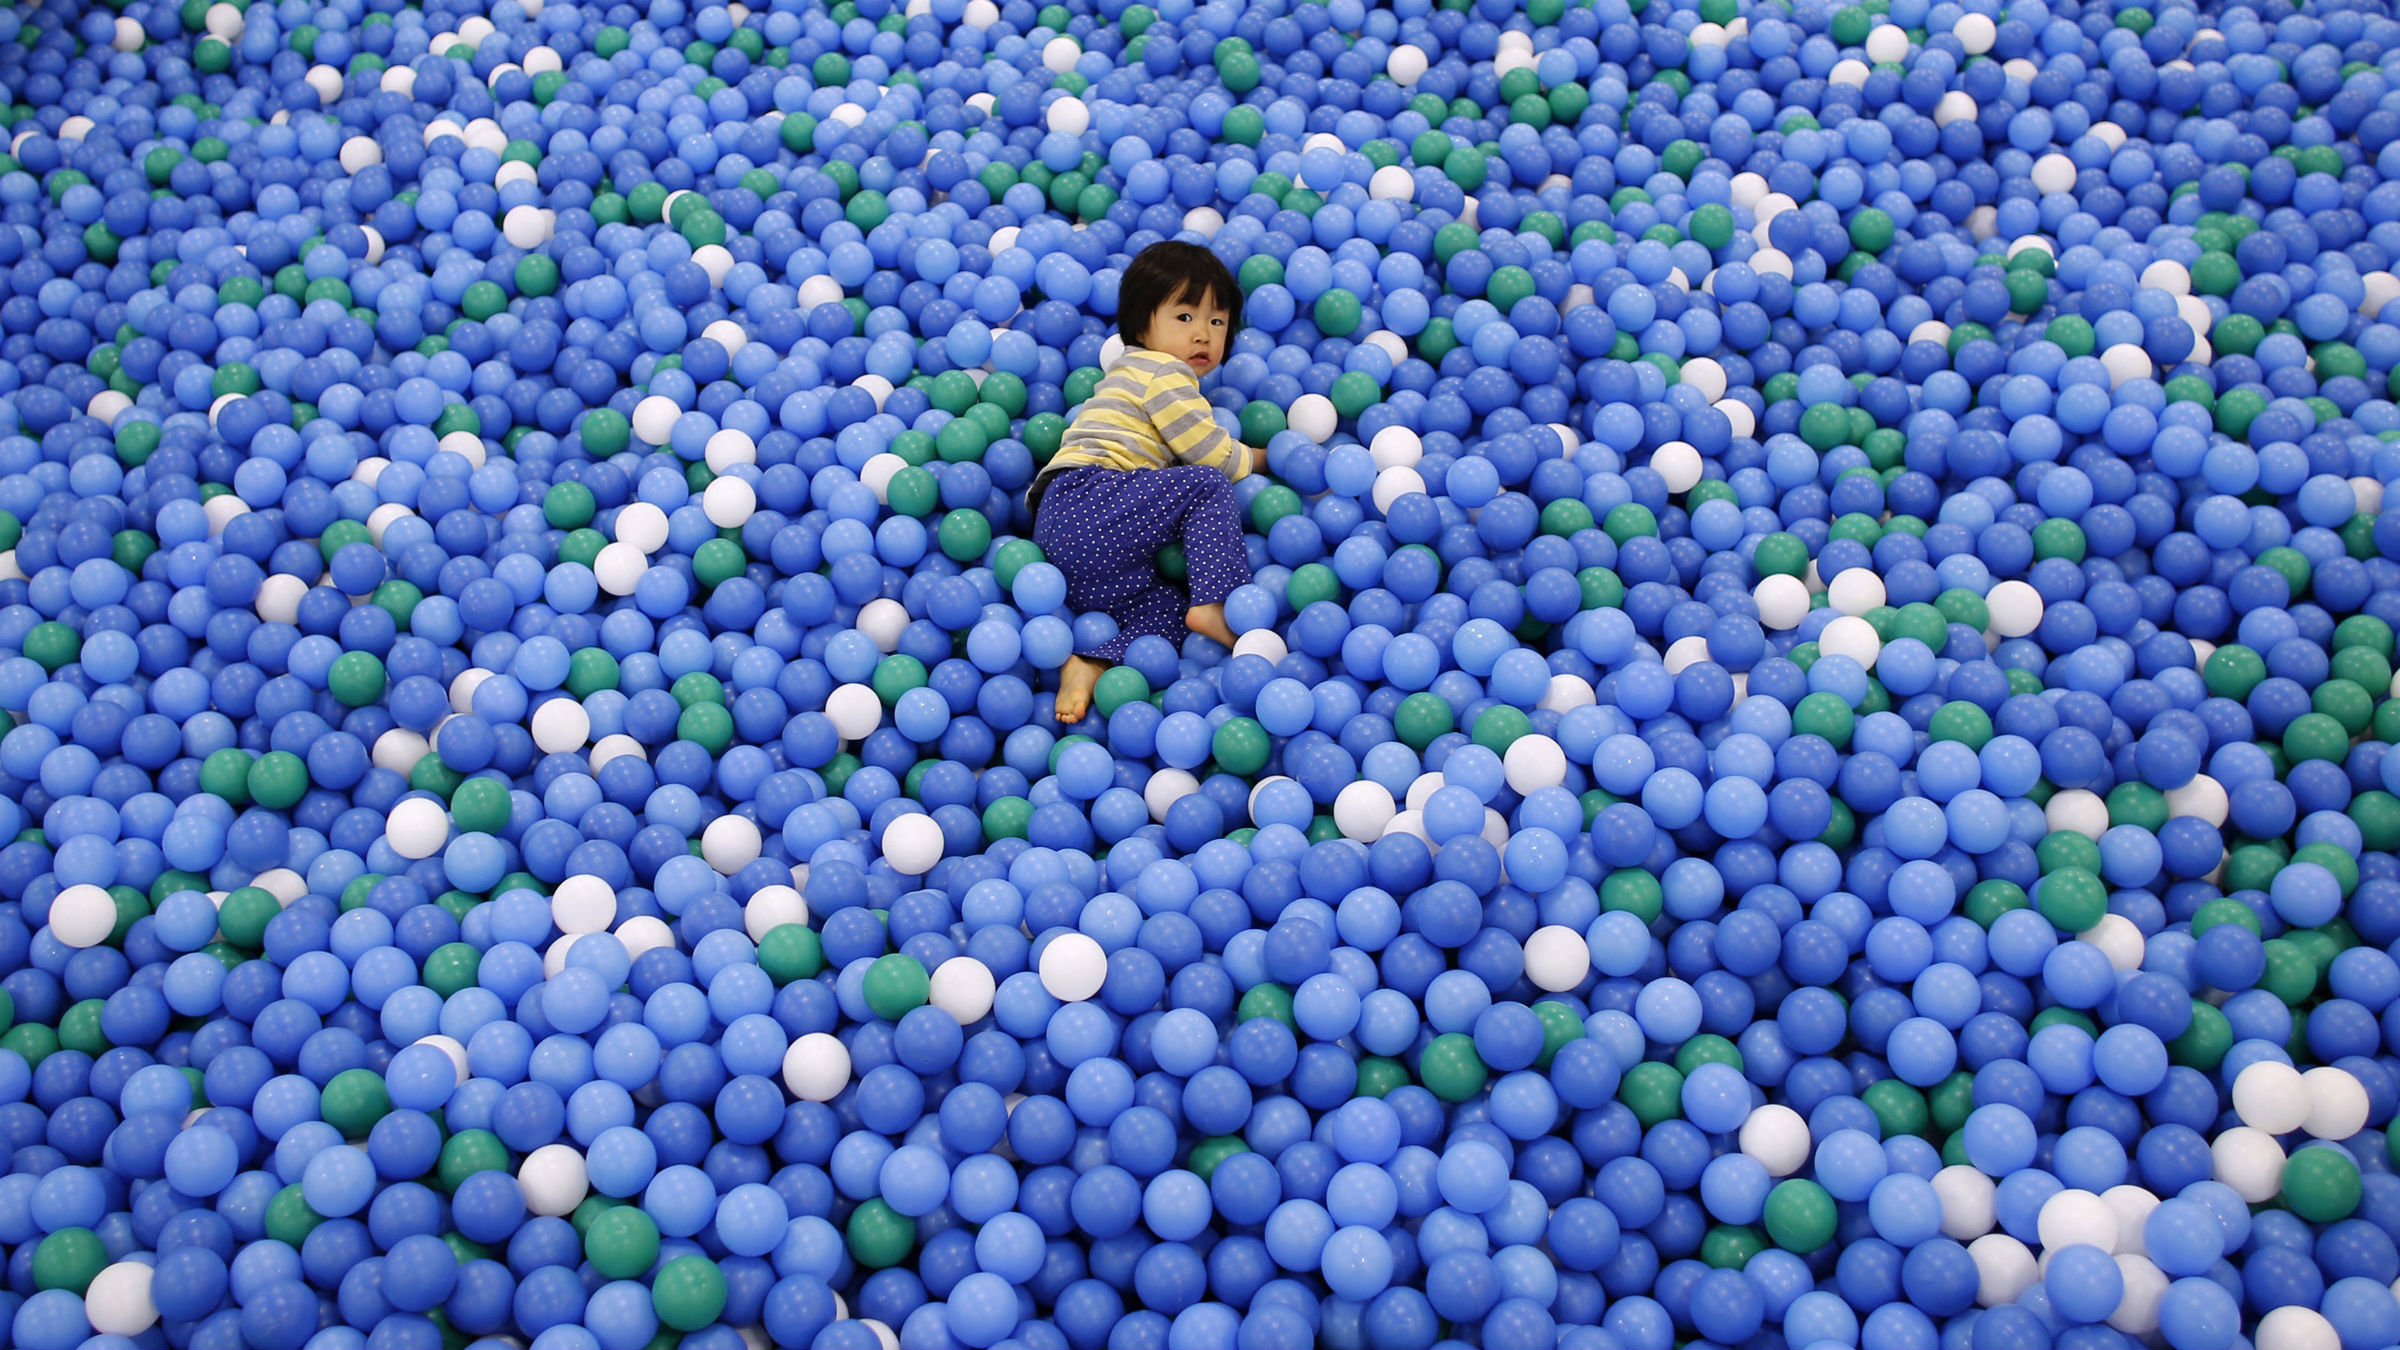 Two-year-old Nao Watanabe plays in a ball pit at an indoor playground which was built for children and parents who refrain from playing outside because of concerns about nuclear radiation in Koriyama, west of the tsunami-crippled Fukushima Daiichi nuclear power plant, Fukushima prefecture February 27, 2014. March 11 marks the third anniversary of the earthquake and tsunami that devastated Japan's Fukushima Daiichi nuclear power plant. In Koriyama, a short drive from the crippled Fukushima nuclear plant, the city recommended shortly after the disaster that children up to two years old not spend more than 15 minutes outside each day. Those aged 3 to 5 should limit their outdoor time to 30 minutes or less. The limits were lifted last year, but many kindergartens and nursery schools continue to obey them even now in line with the wishes of worried parents. An annual survey by the Fukushima prefecture Board of Education found that children in Fukushima weighed more than the national average in virtually every age group. The cause seems to be a lack of exercise and outdoor activity. Picture taken February 27, 2014.